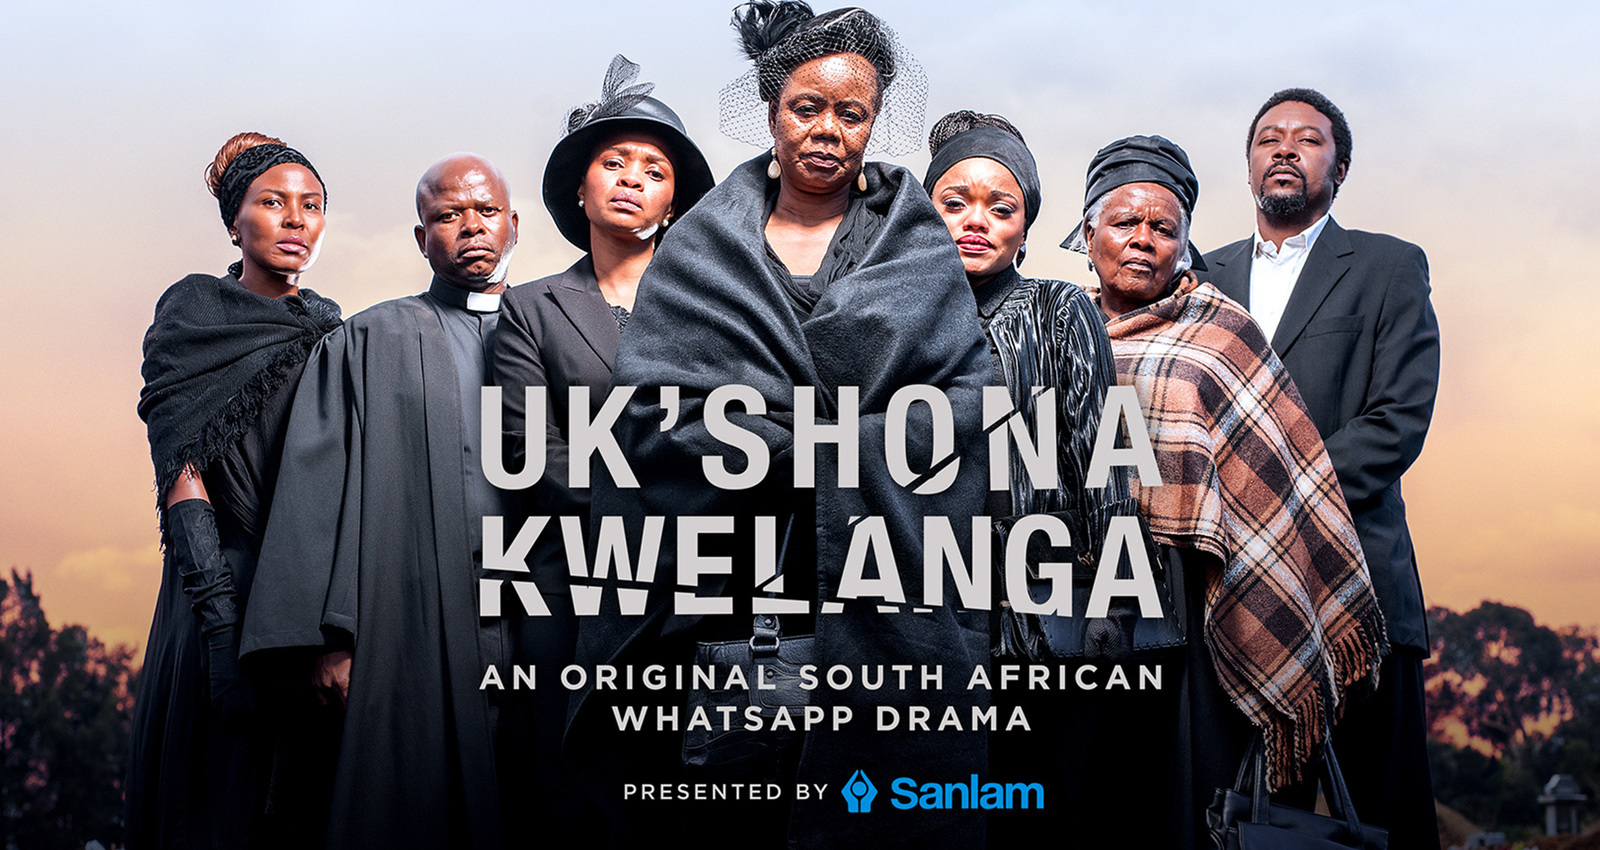 Uk'shona Kwelanga - a WhatsApp Drama series